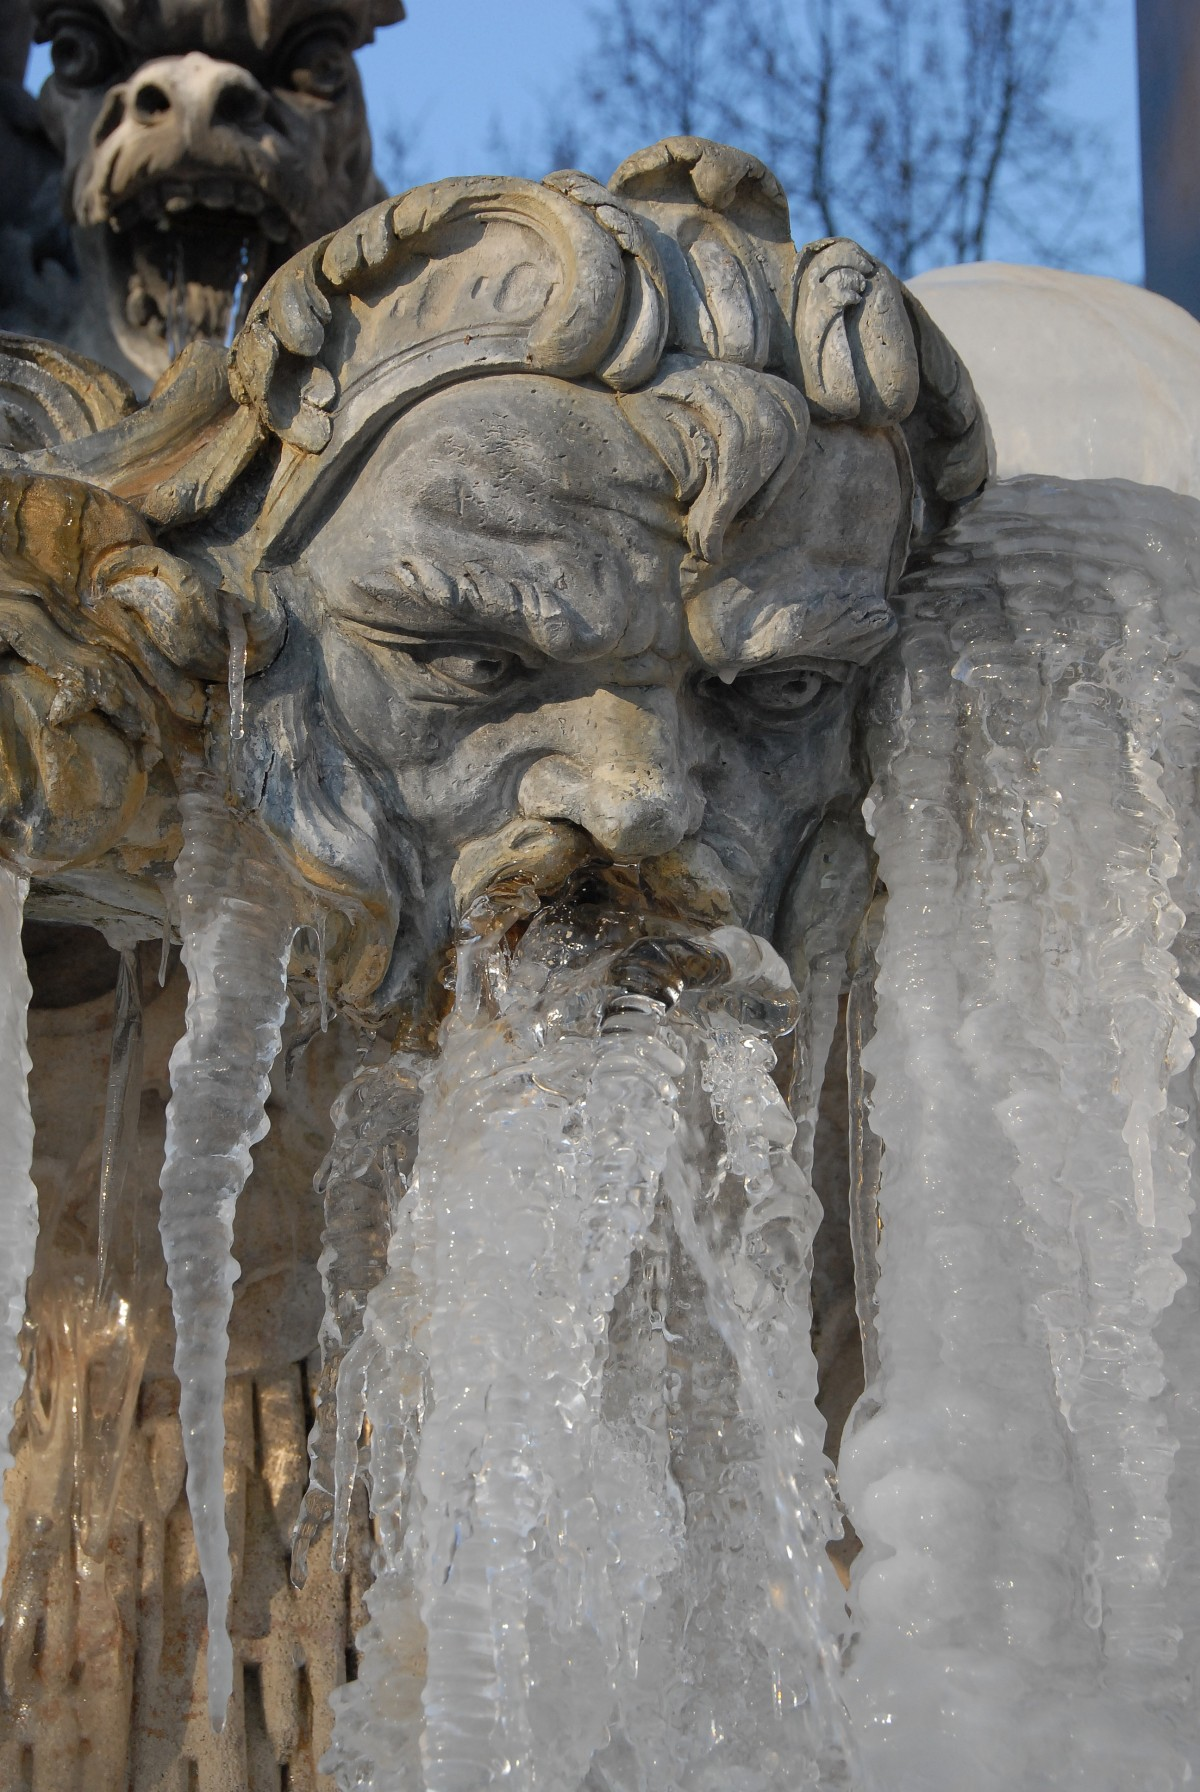 fountain_statue_neptune_face_ice_gel_winter_cold-1273244.jpg